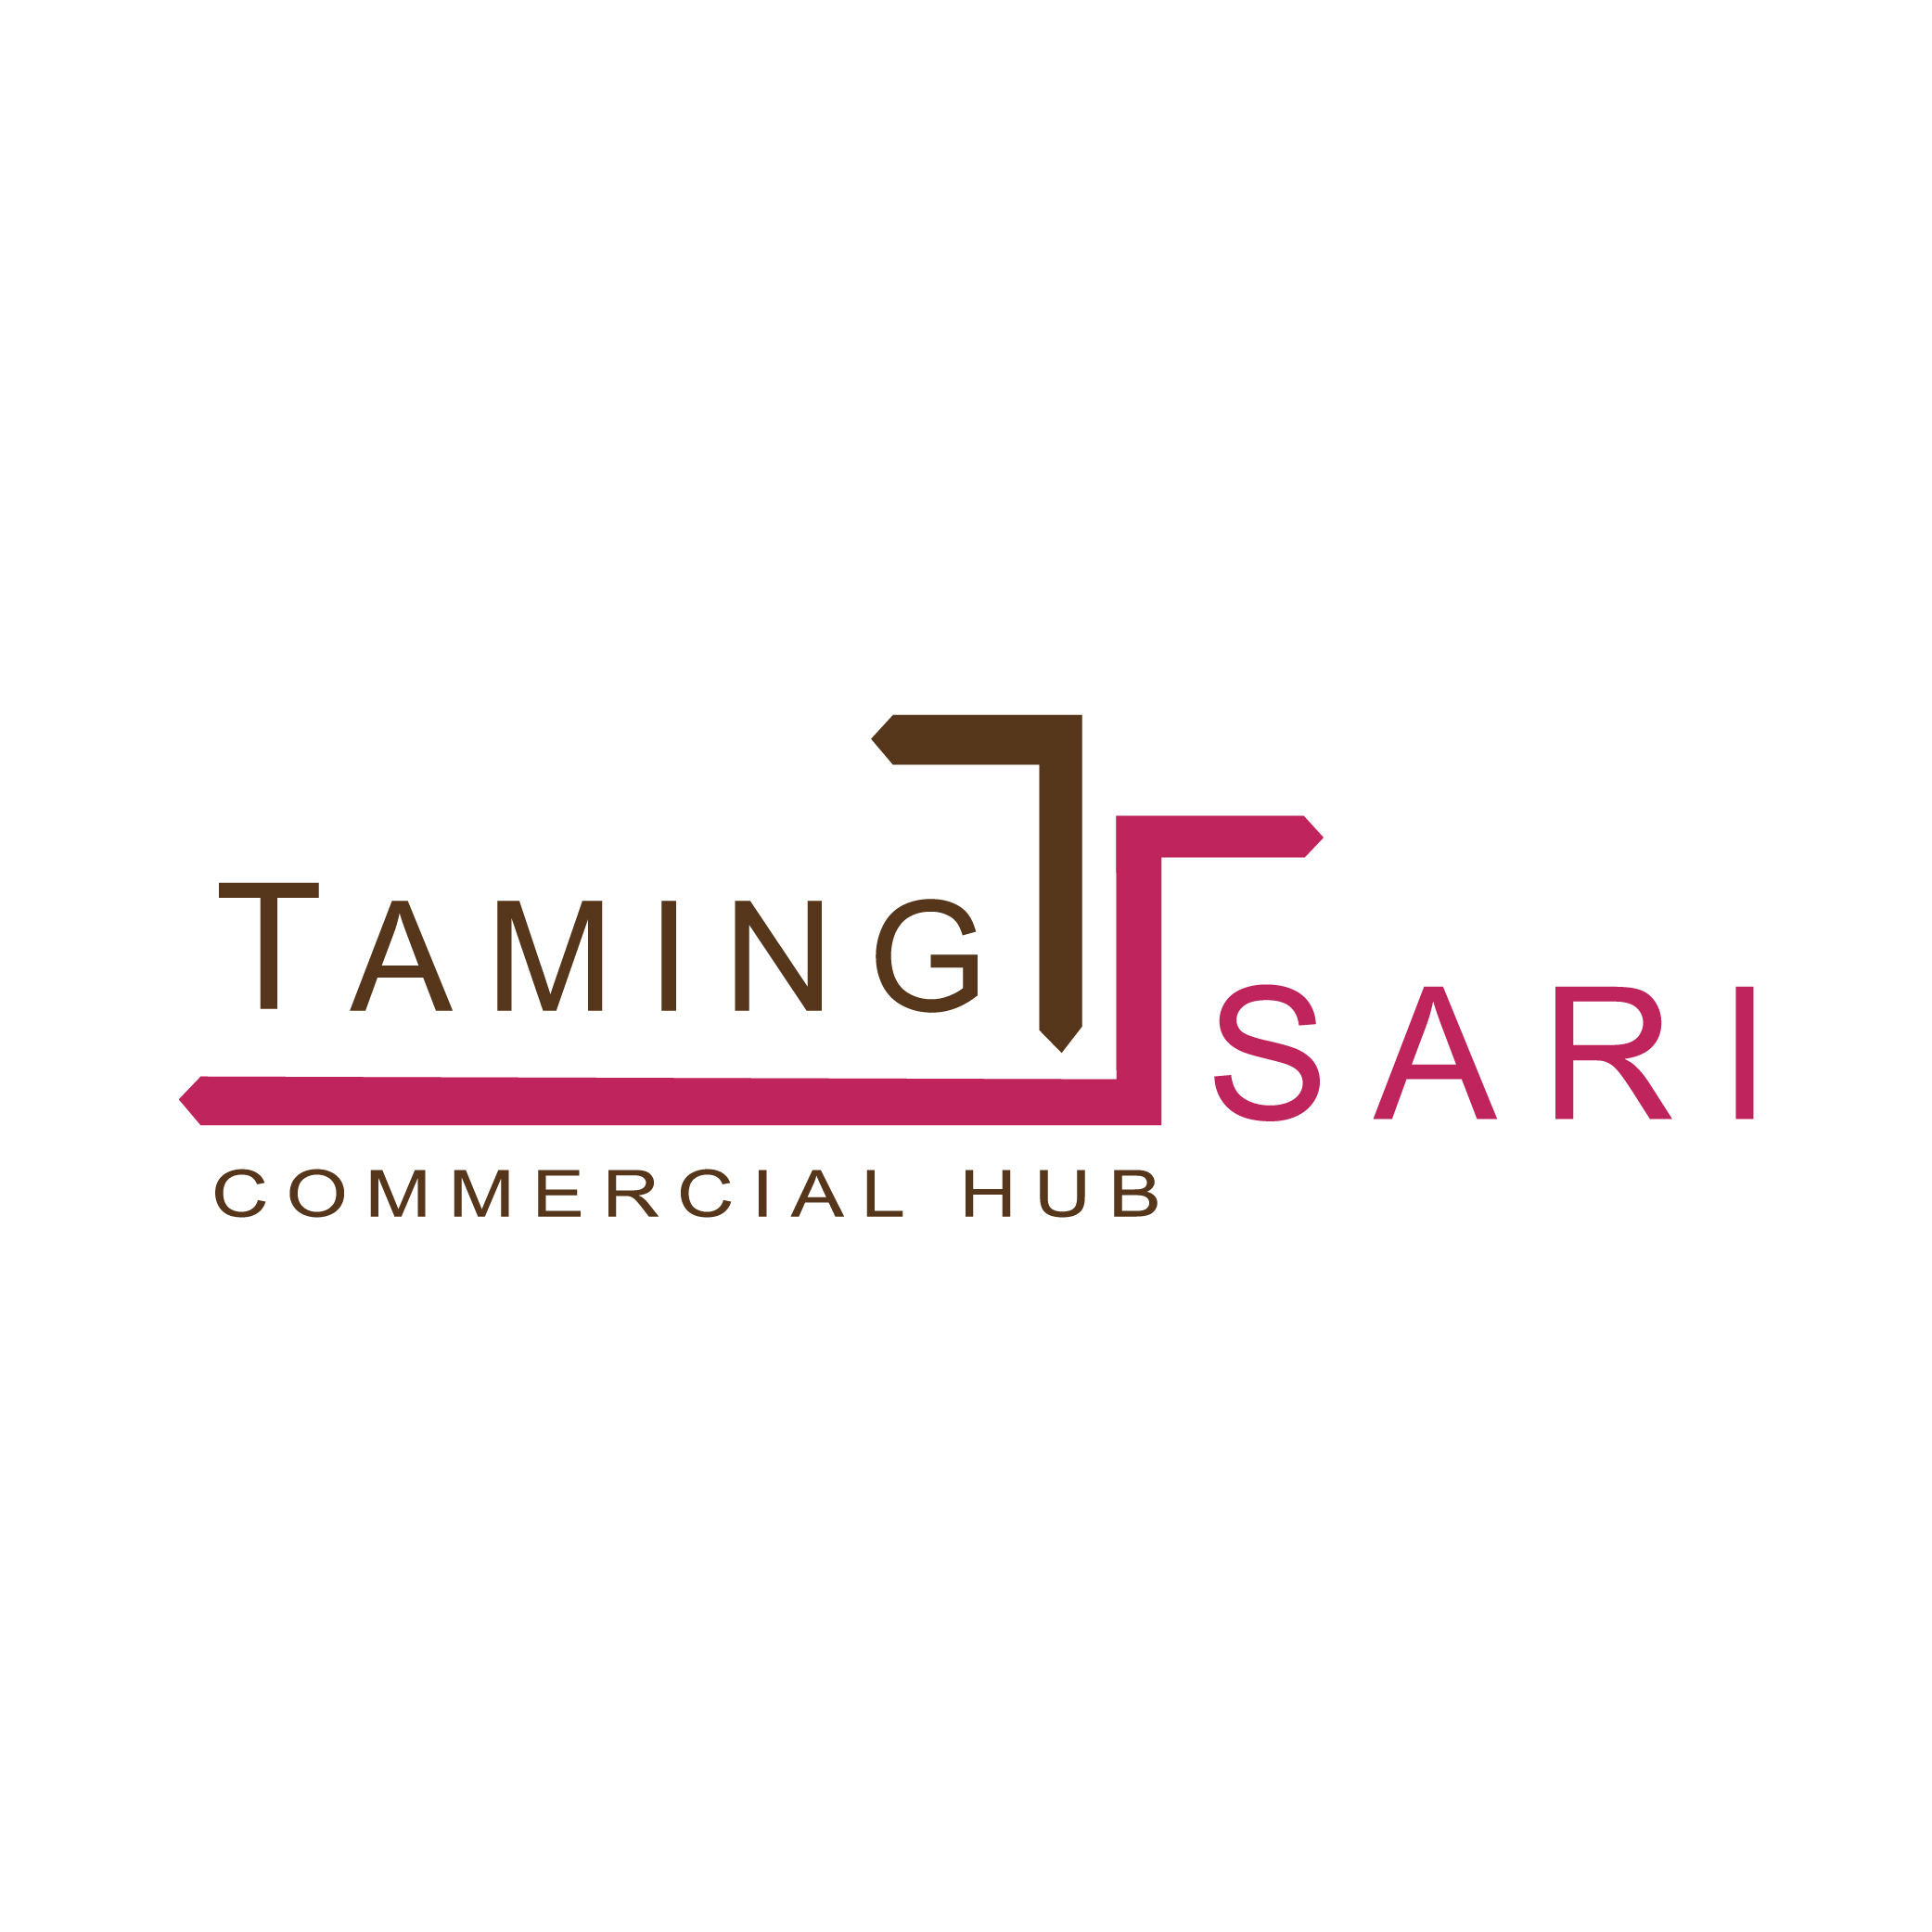 taming saring commercial hub-01